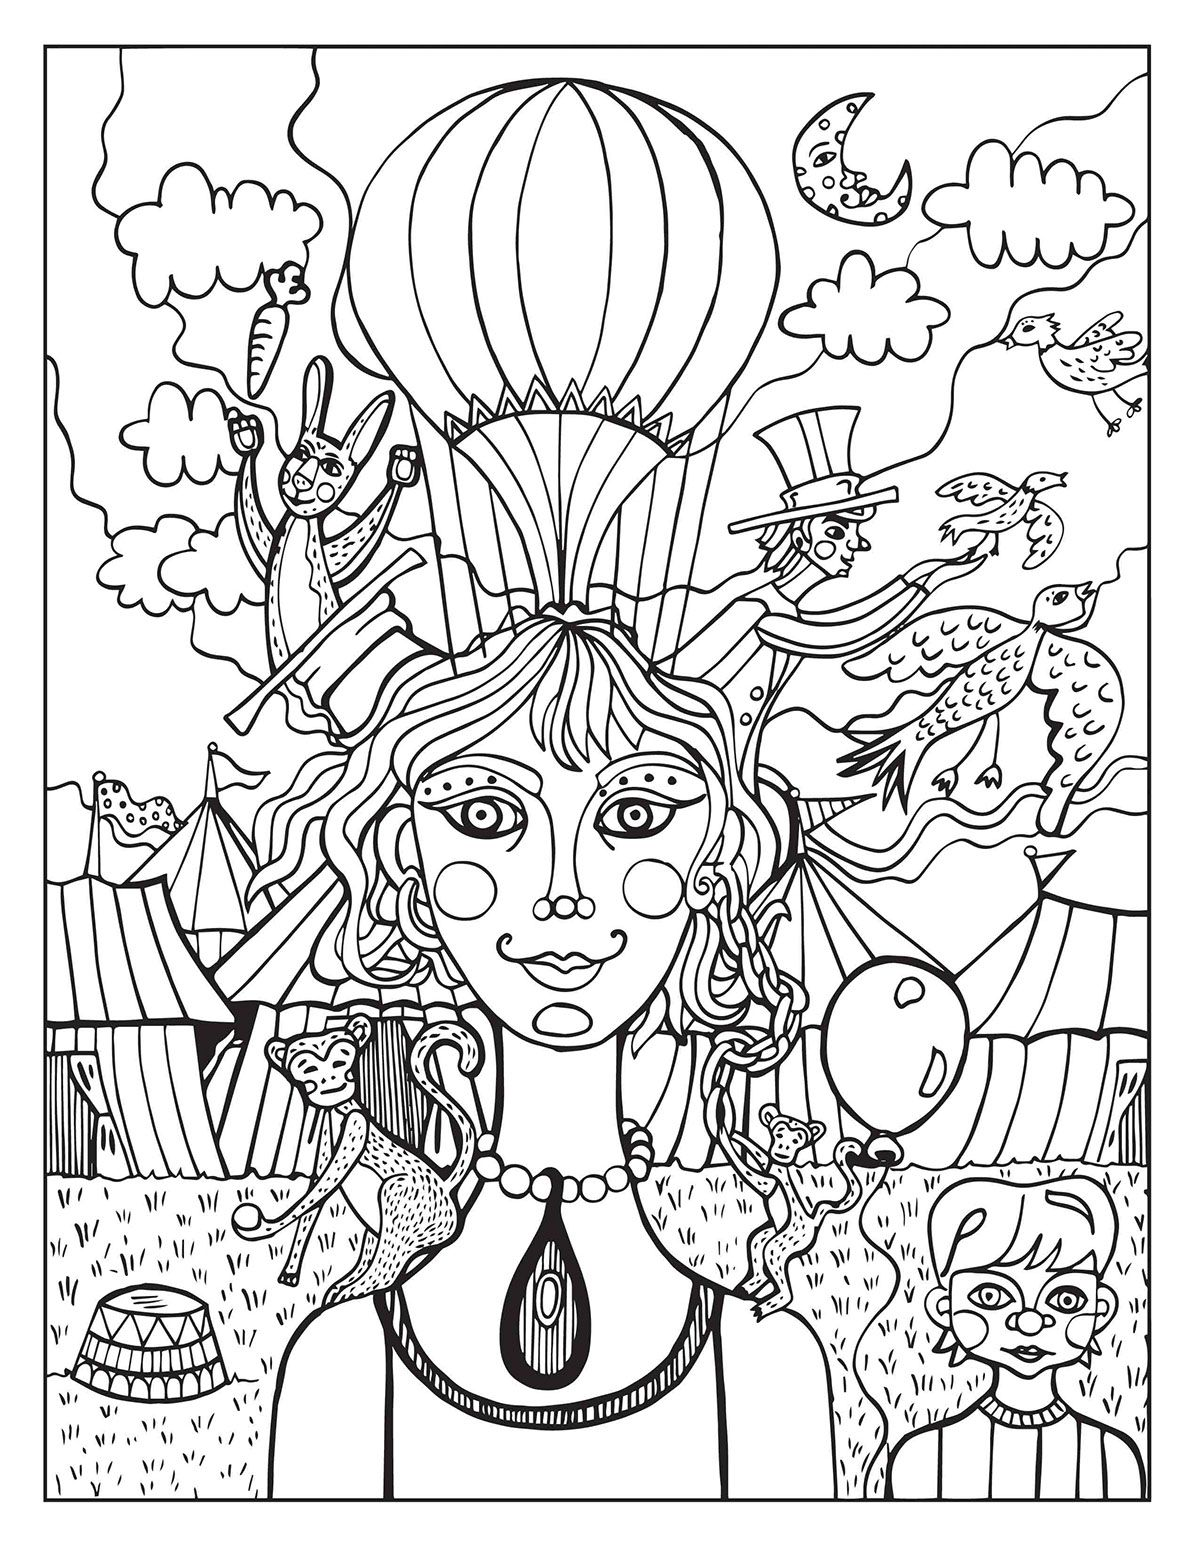 A Day at the Circus coloring page on Behance | Circus | Pinterest ...